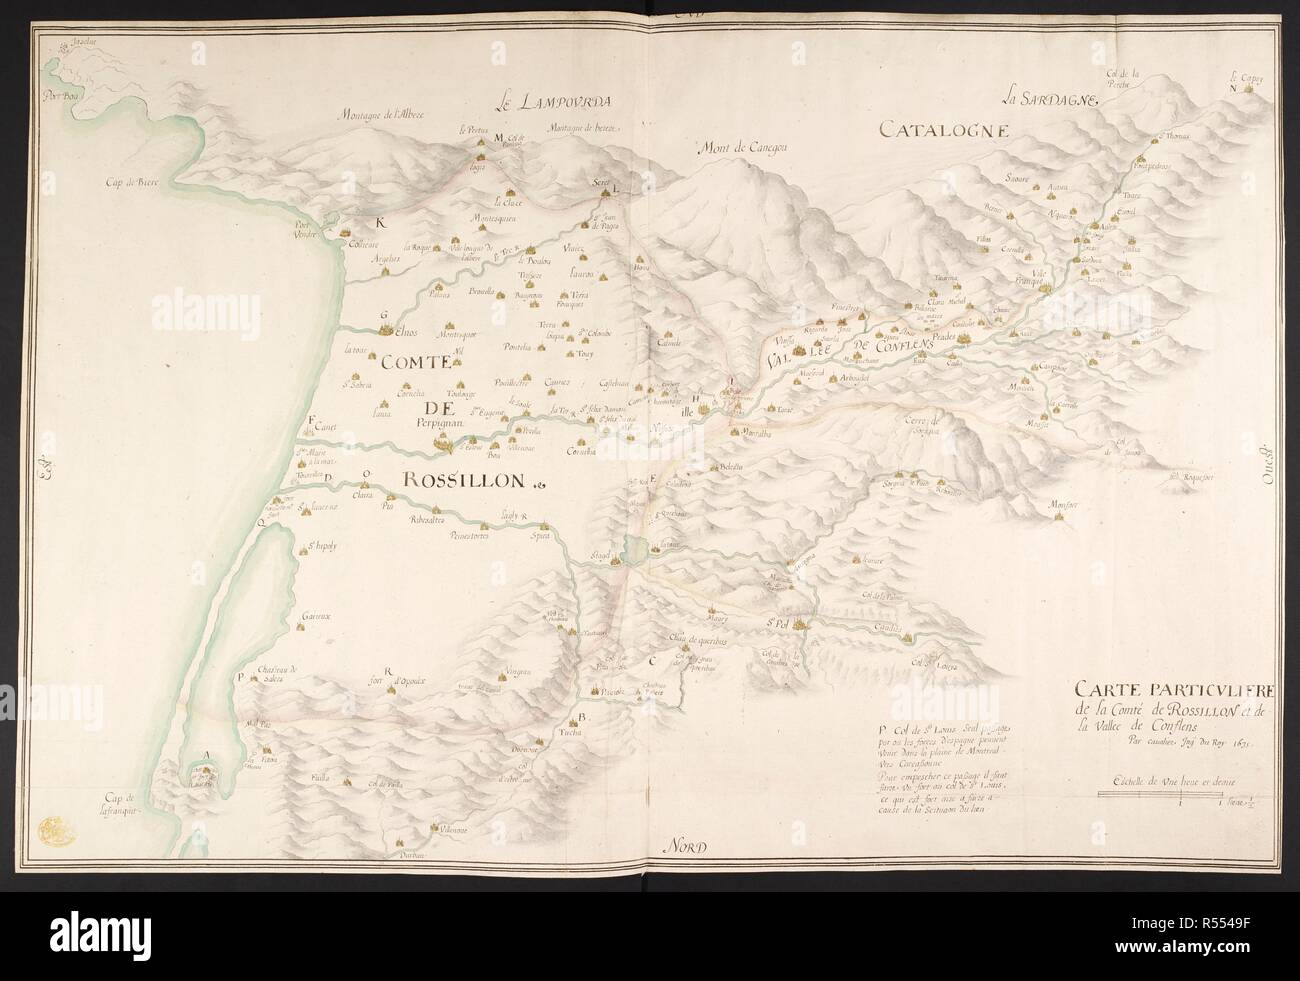 Map Of France In French Language.A Map Of The County Of Rossillon And The Conflens Valley France A